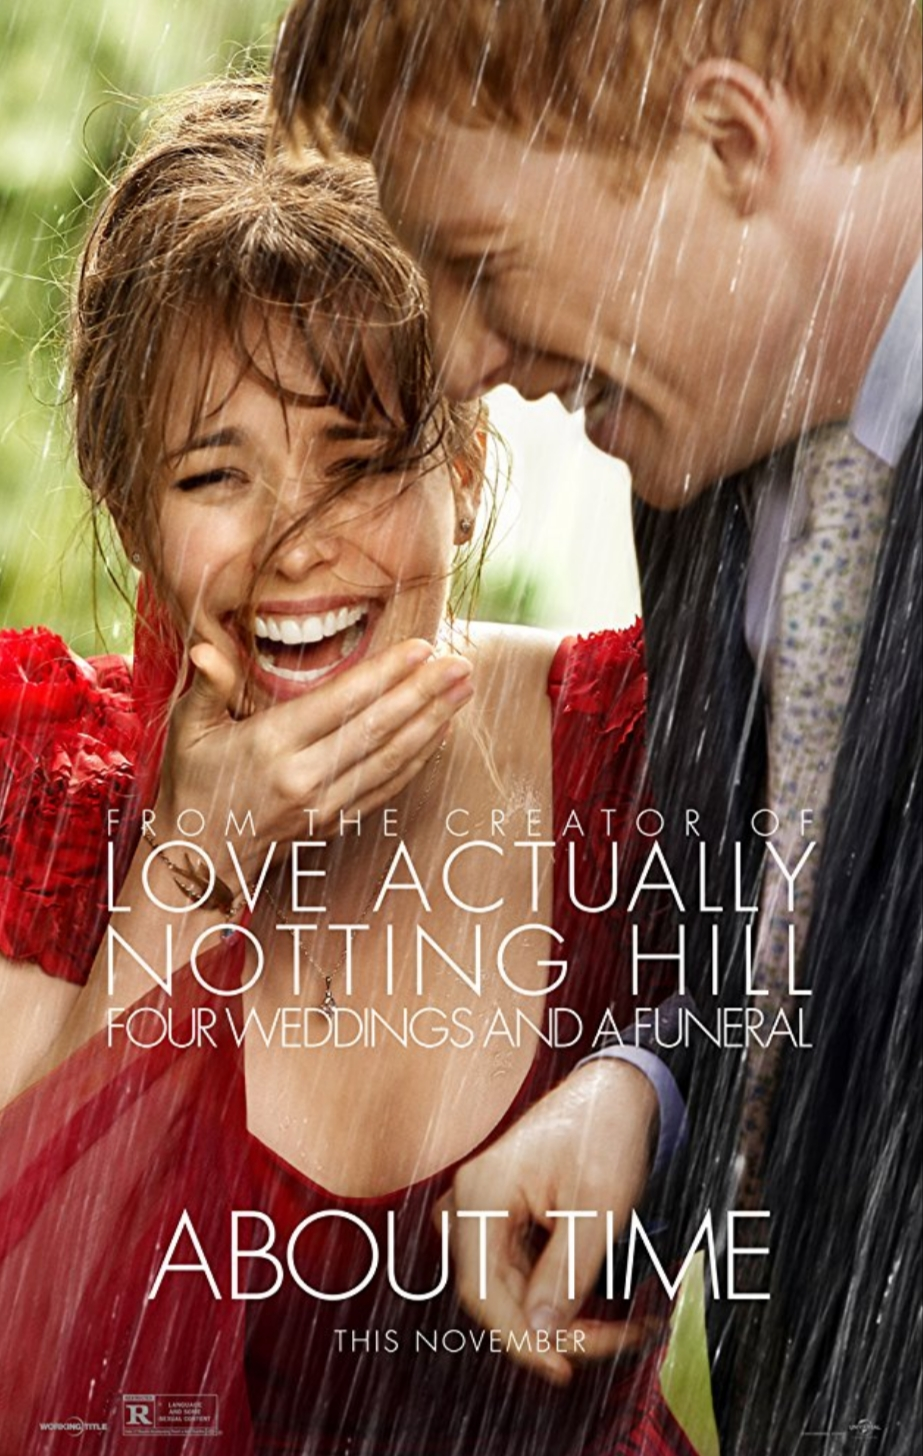 romantic movies to watch. to rachel mcadams movies. Top romance movies to watch. Best romantic movies of all time. about time movie poster